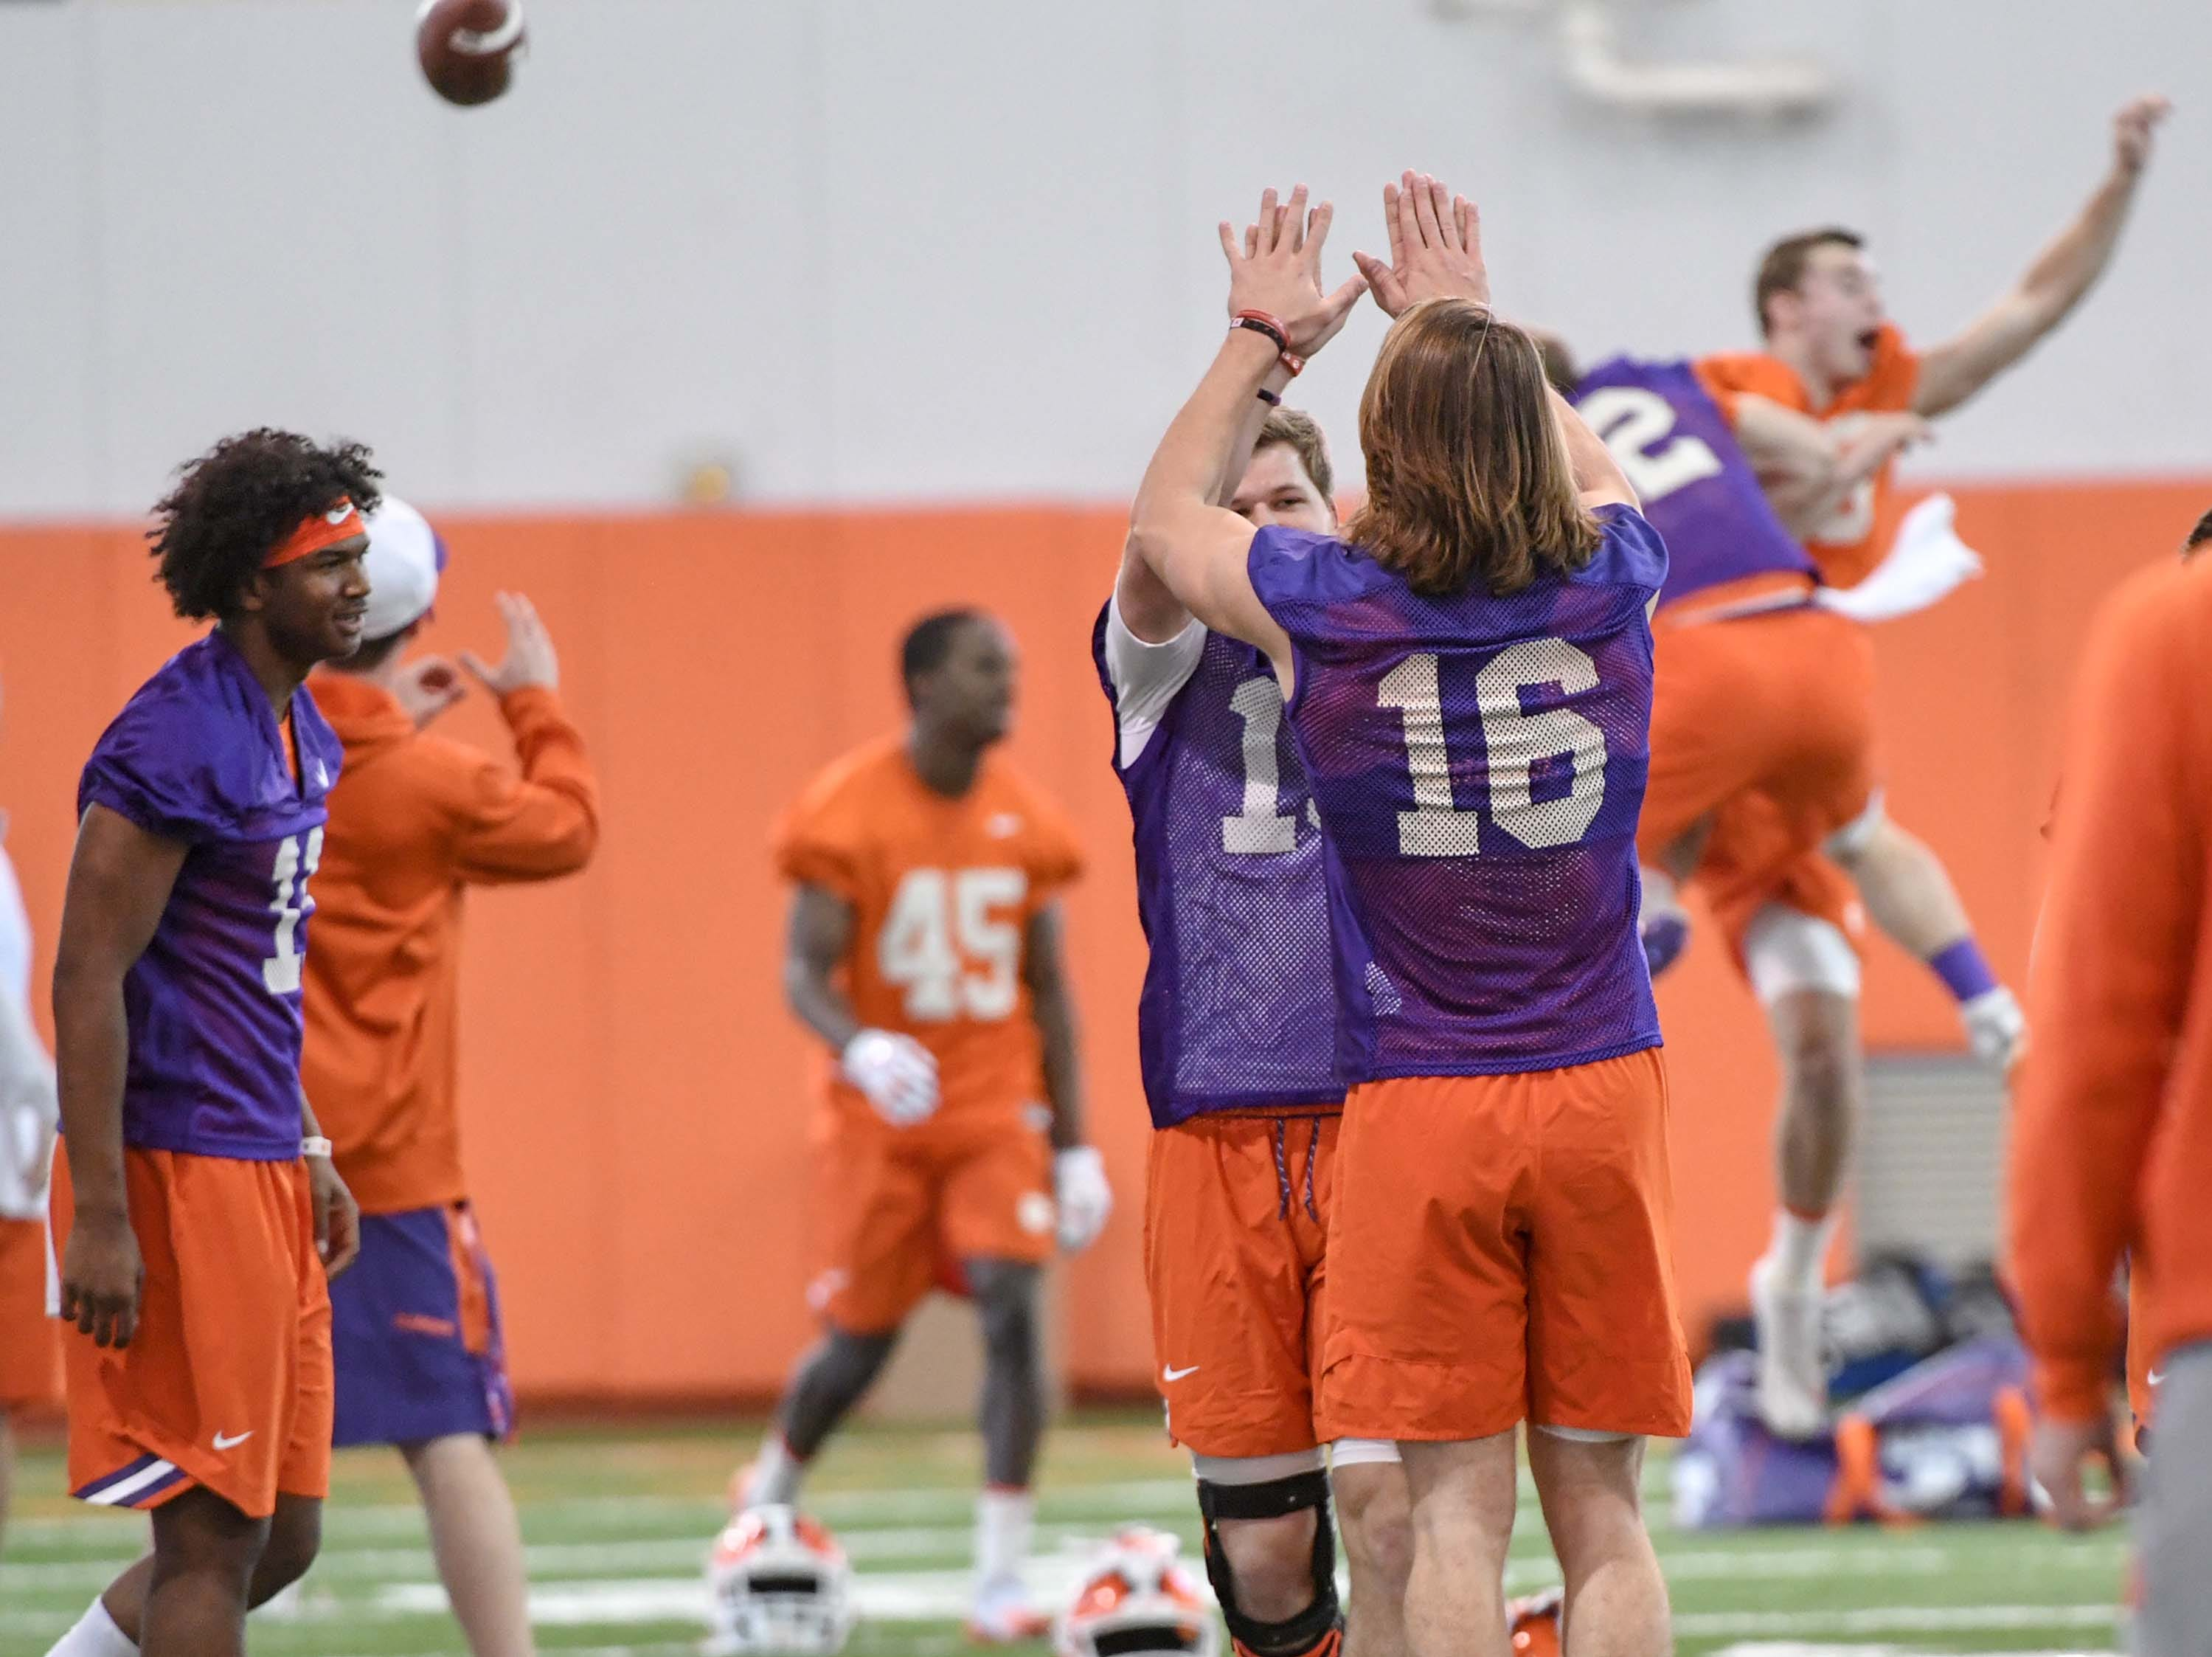 Clemson quarterback Taisun Phommachanh(11), left, a new and early enrollee able to participate in spring practice, watches veterans quarterback Patrick McClure (15) and quarterback Trevor Lawrence (16) high five each other at the beginning of the first practice at the Clemson Indoor Practice Facility in Clemson Wednesday, February 27, 2019.